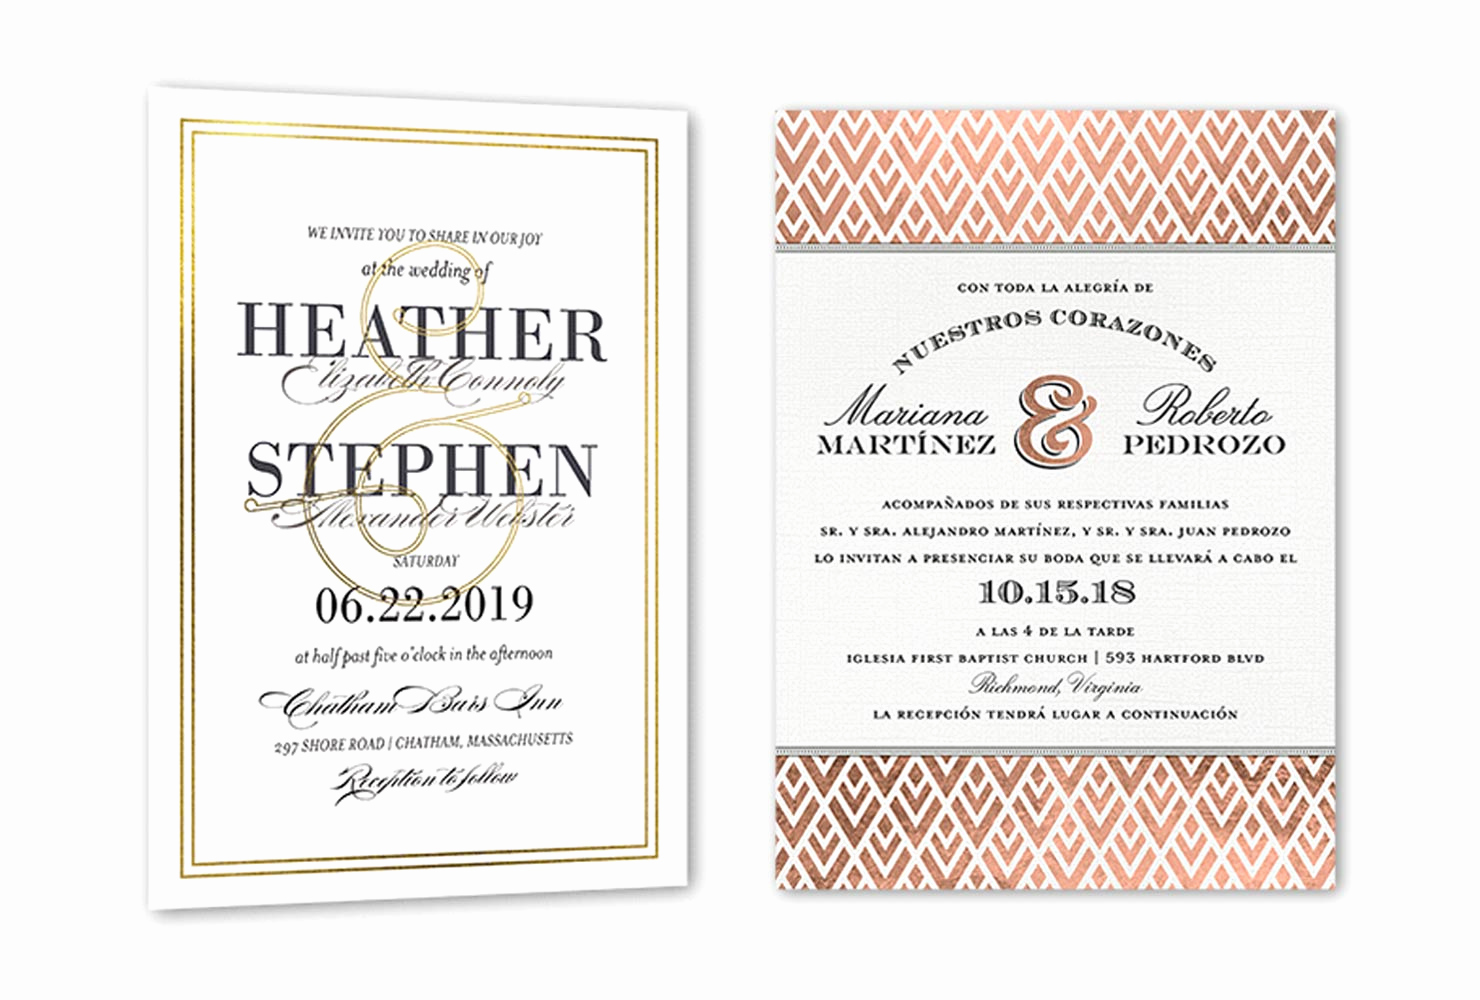 Father Daughter Dance Invitation Wording Inspirational 35 Wedding Invitation Wording Examples 2019